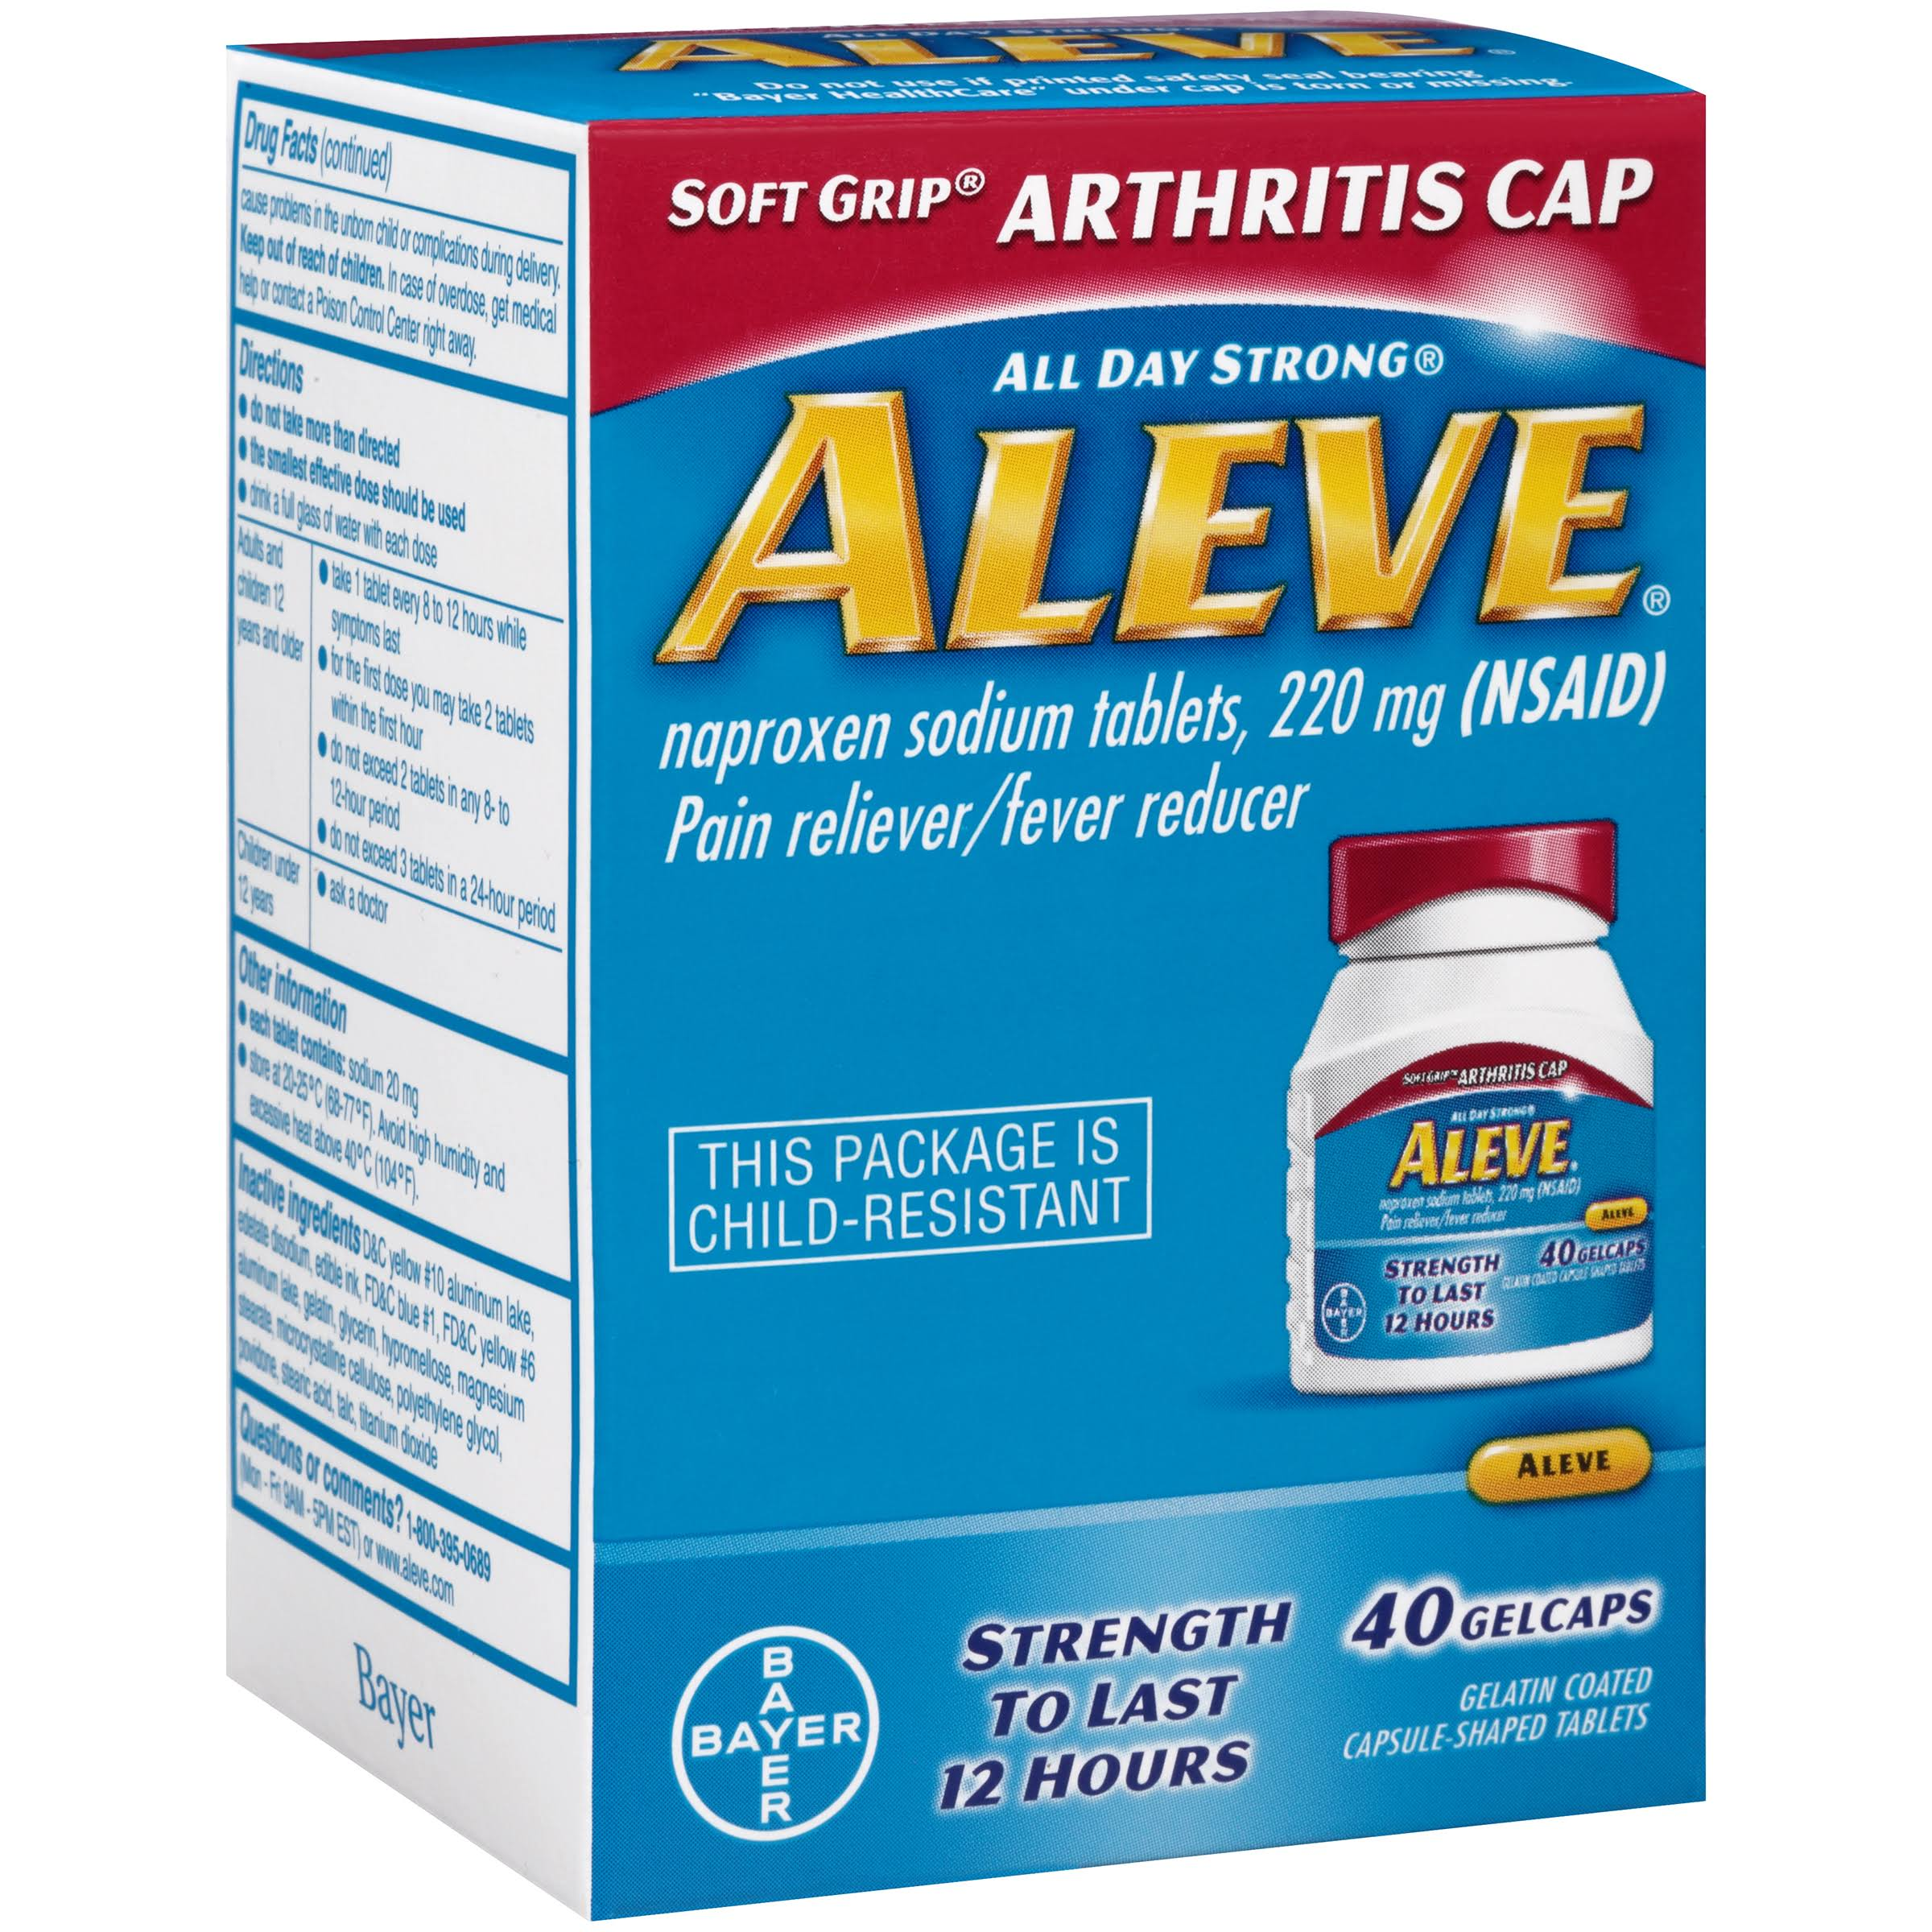 Aleve Naproxen Sodium Tablets - 220mg, 40 Gel Caps